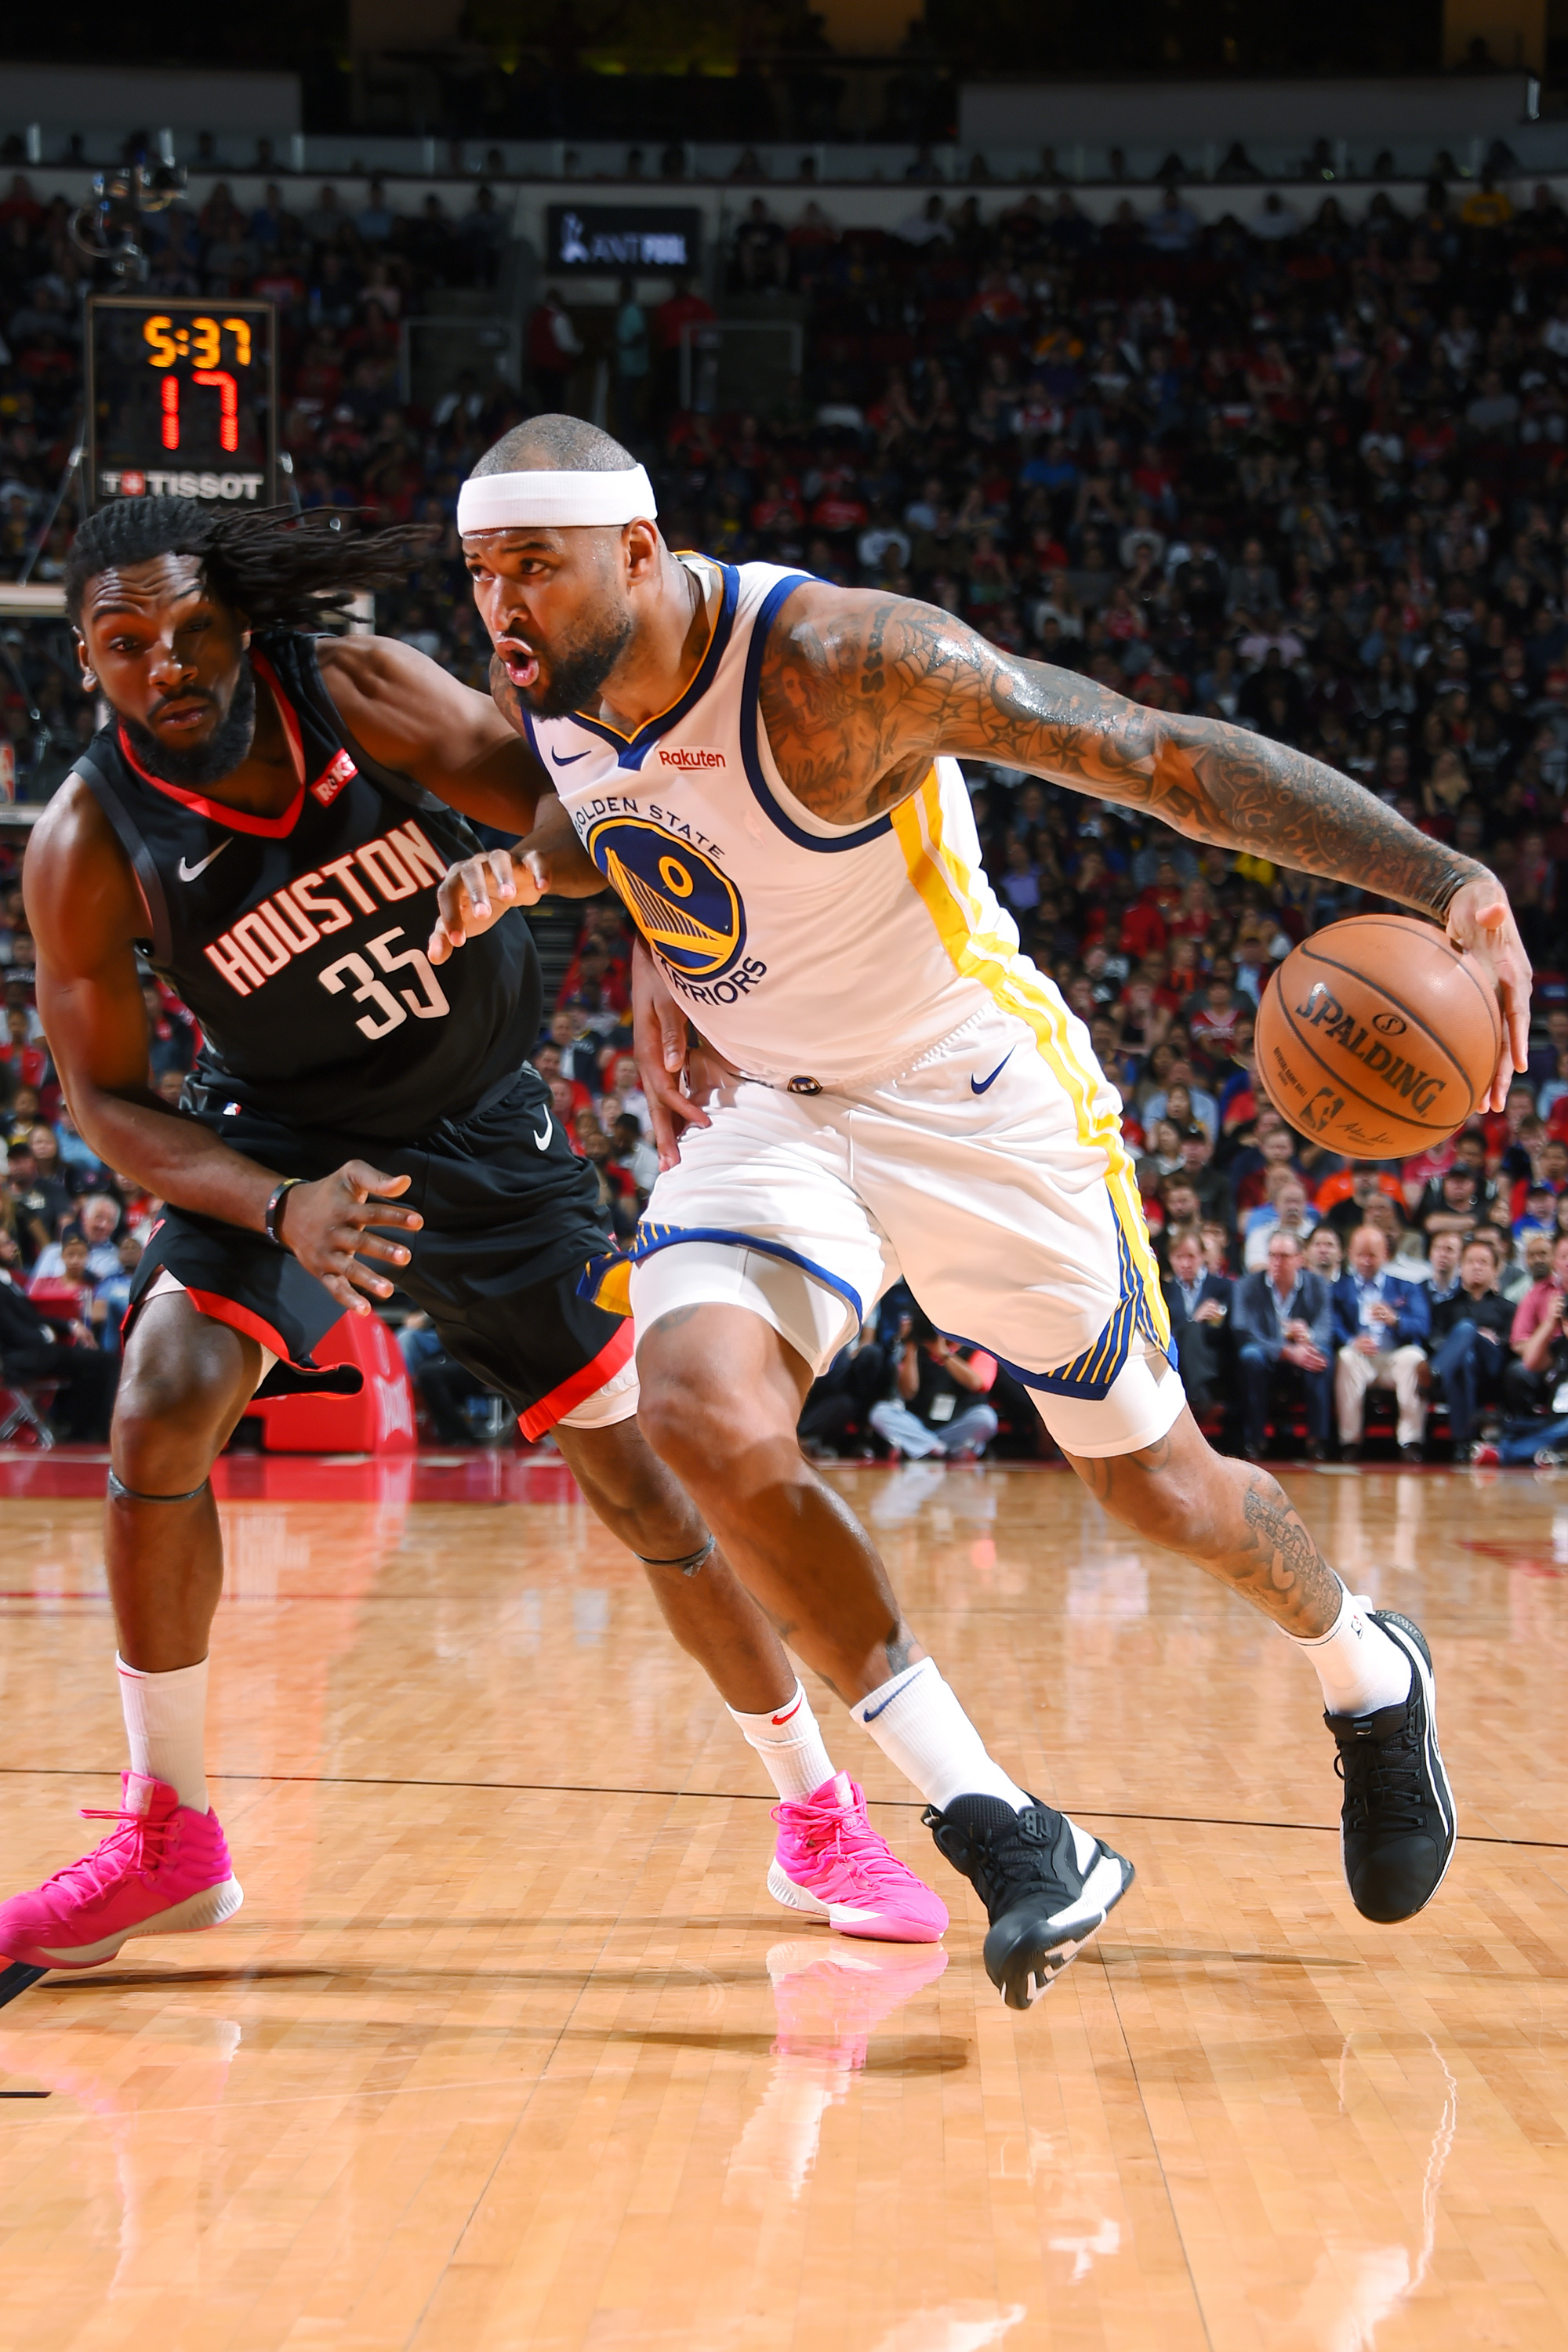 4a8ed43cb5b4 DeMarcus Cousins (left) drives to the basket against Kenneth Faried (left)  as the Warriors faced the Rockets at Houston s Toyota Center on March 13.